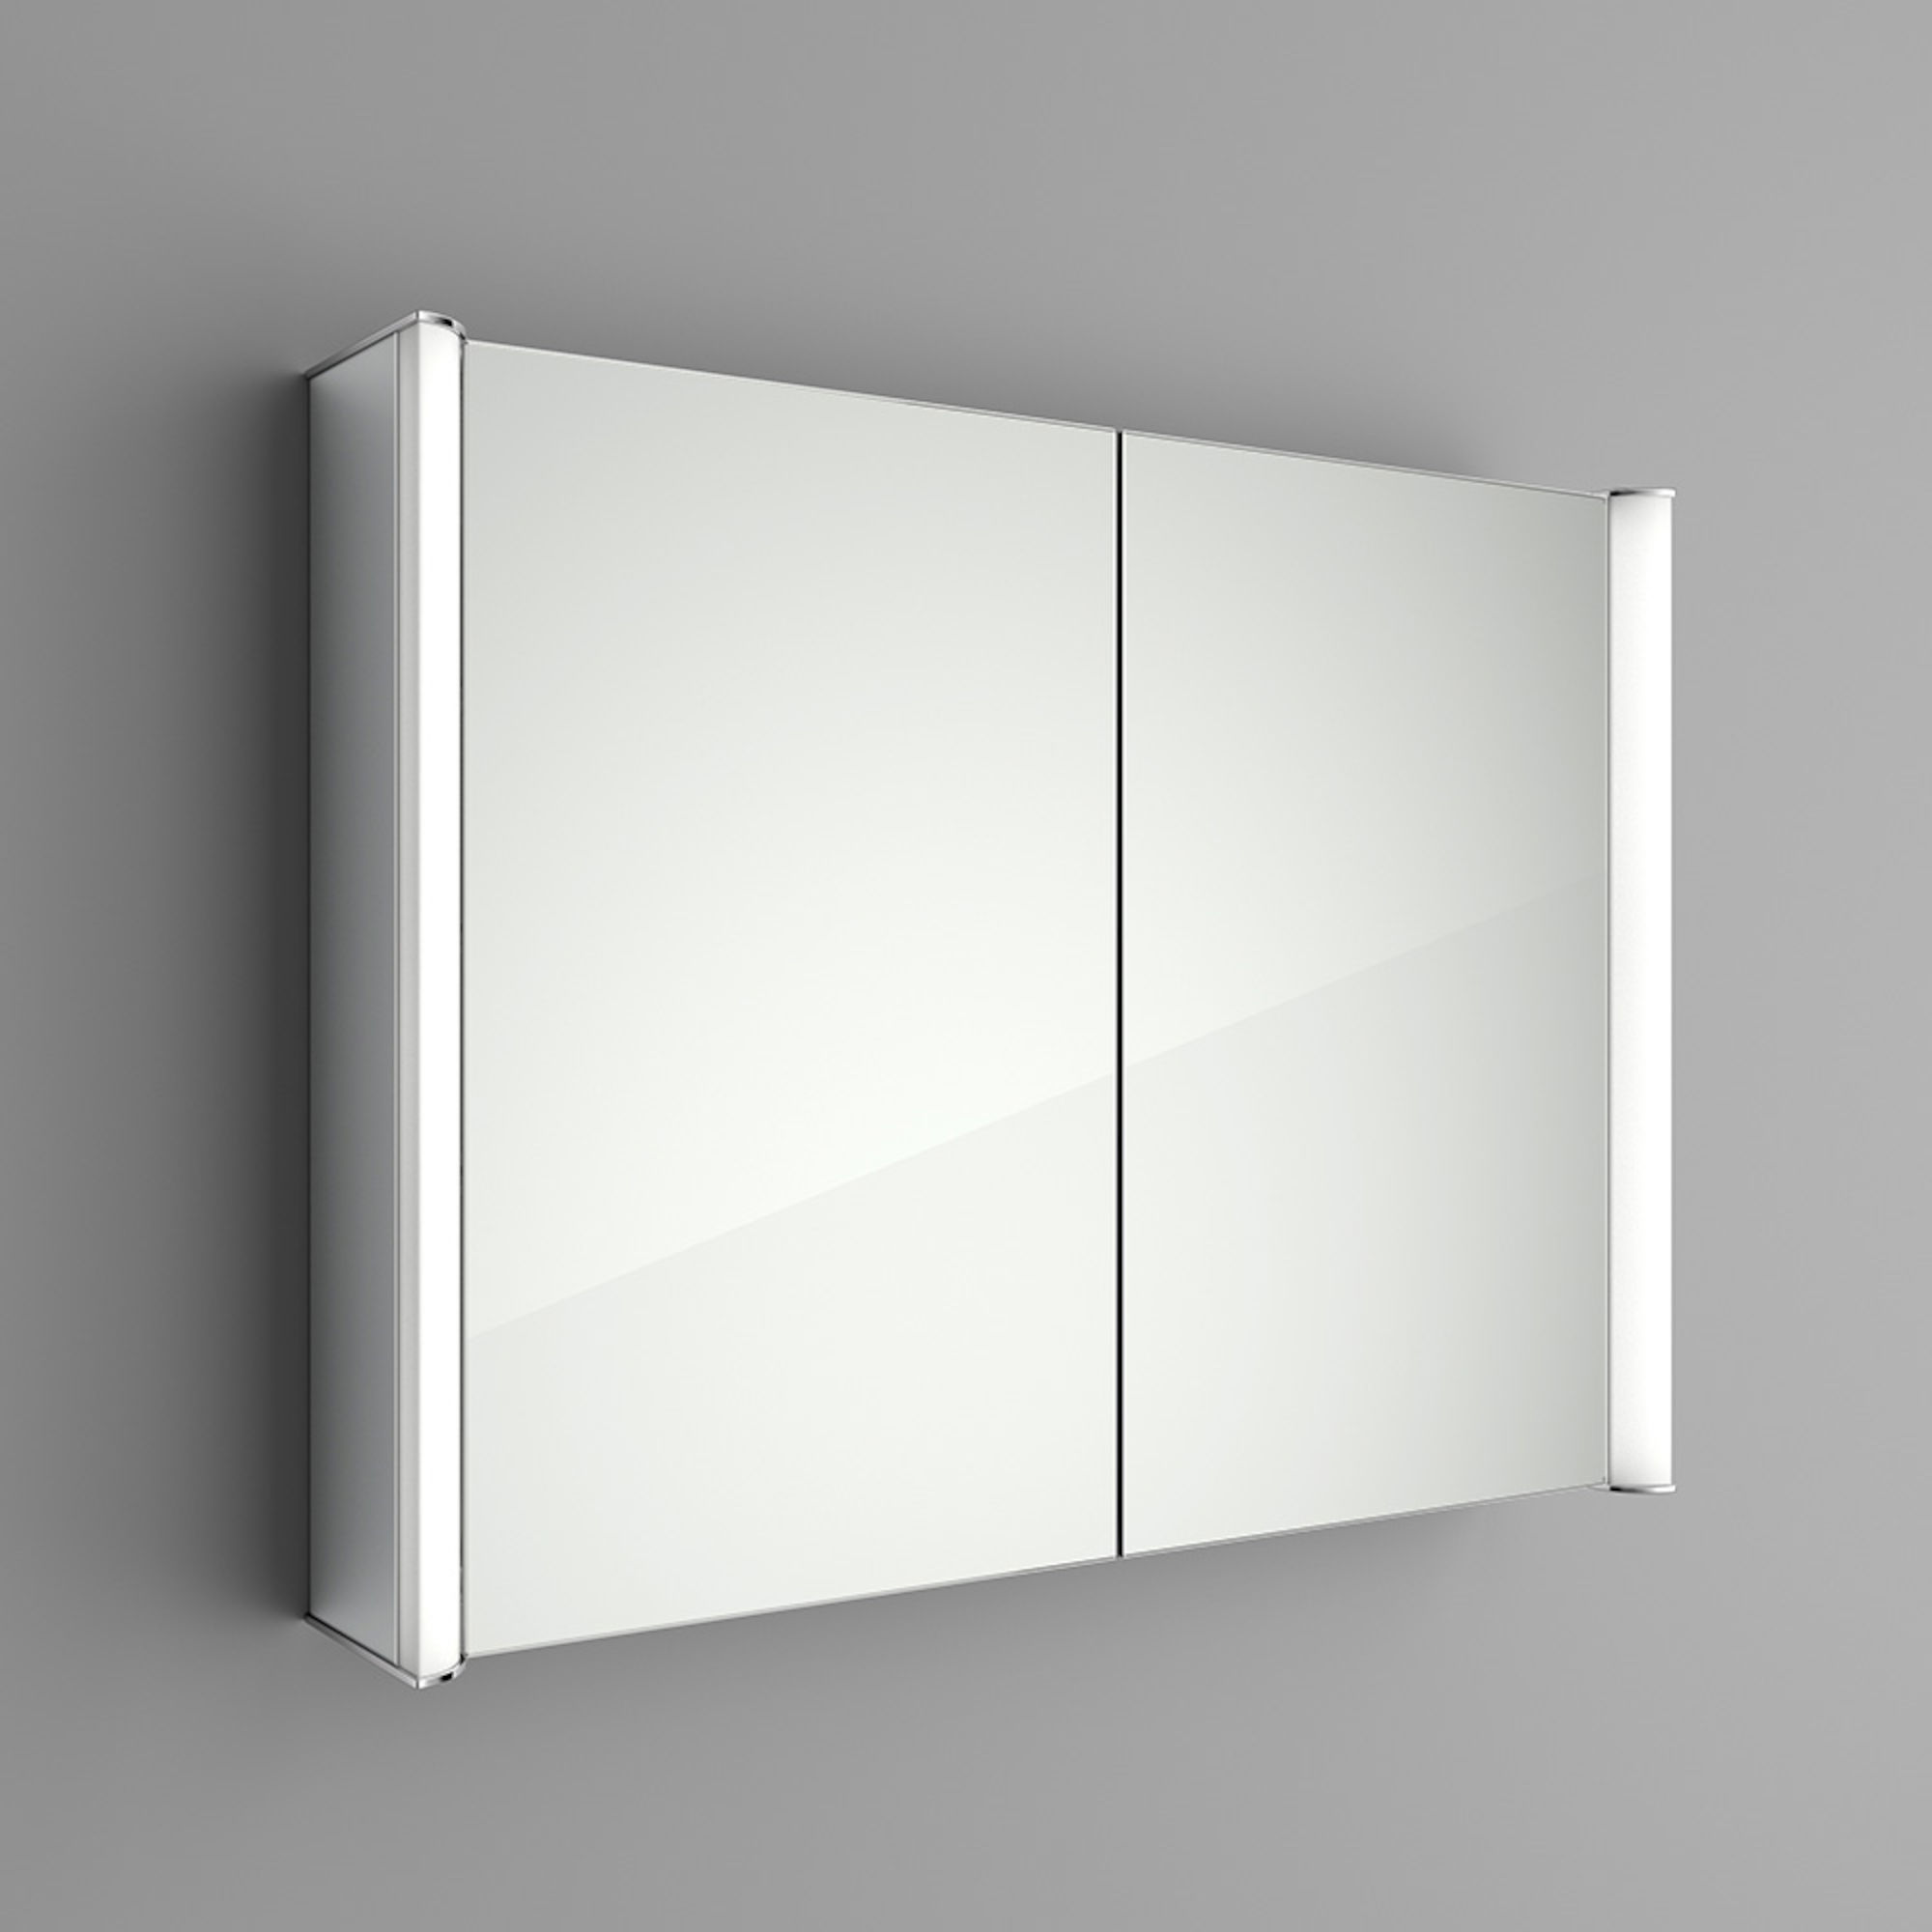 Lot 26 - (LP23) 800x600mm Bloom Illuminated LED Mirror Cabinet - Shaver Socket. RRP £499.99. Double Sided